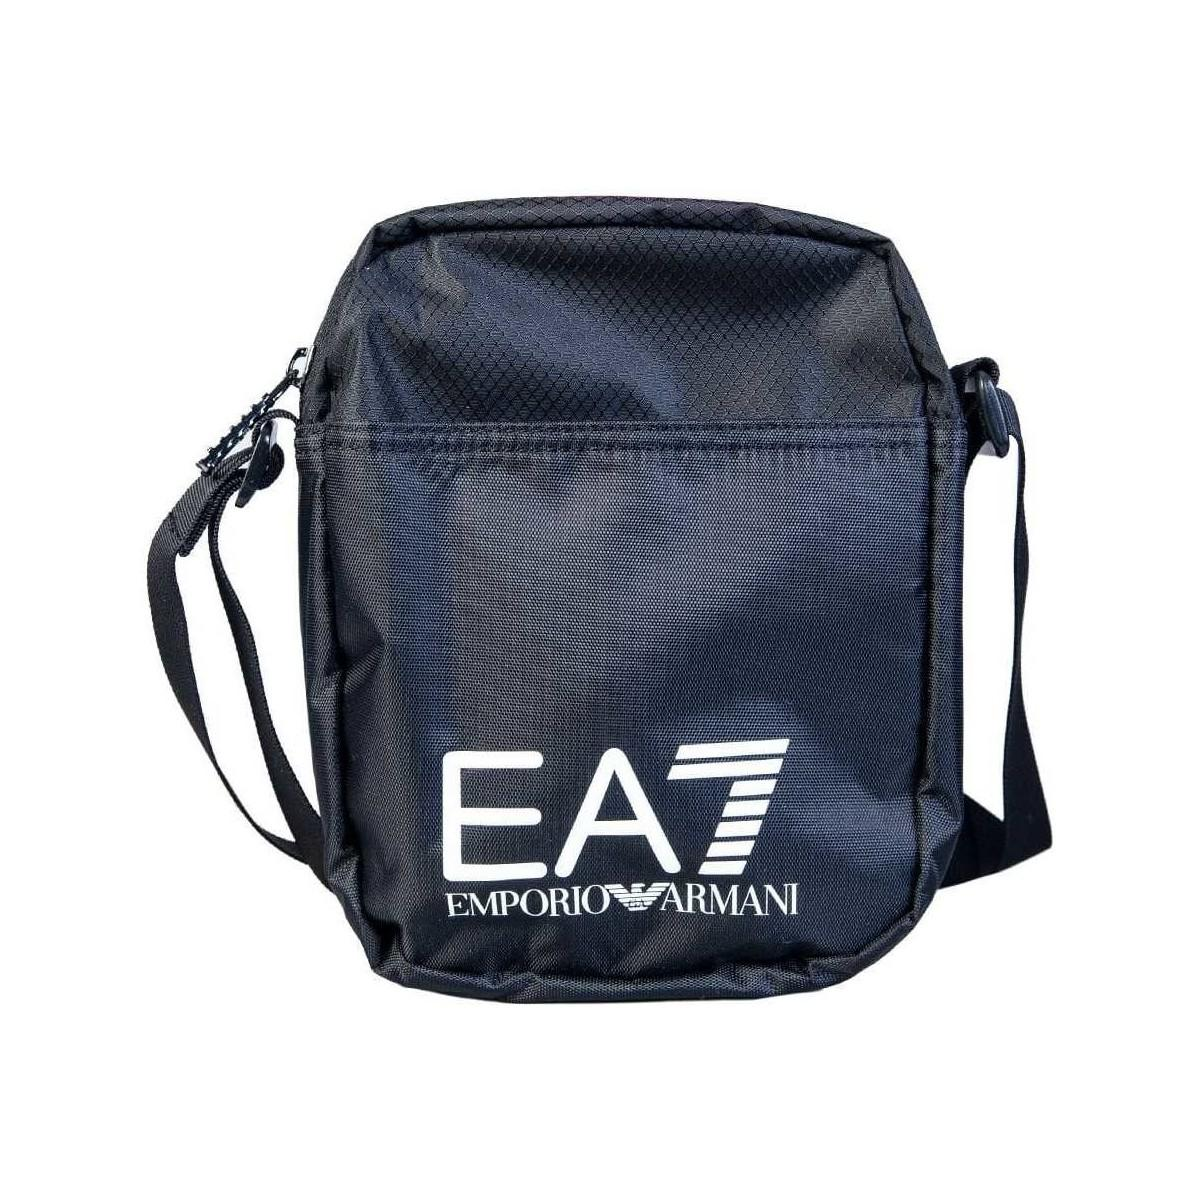 121dfccf68 Ea7 Messenger Bag 275658 Cc731 Men s Messenger Bag In Black in Black ...